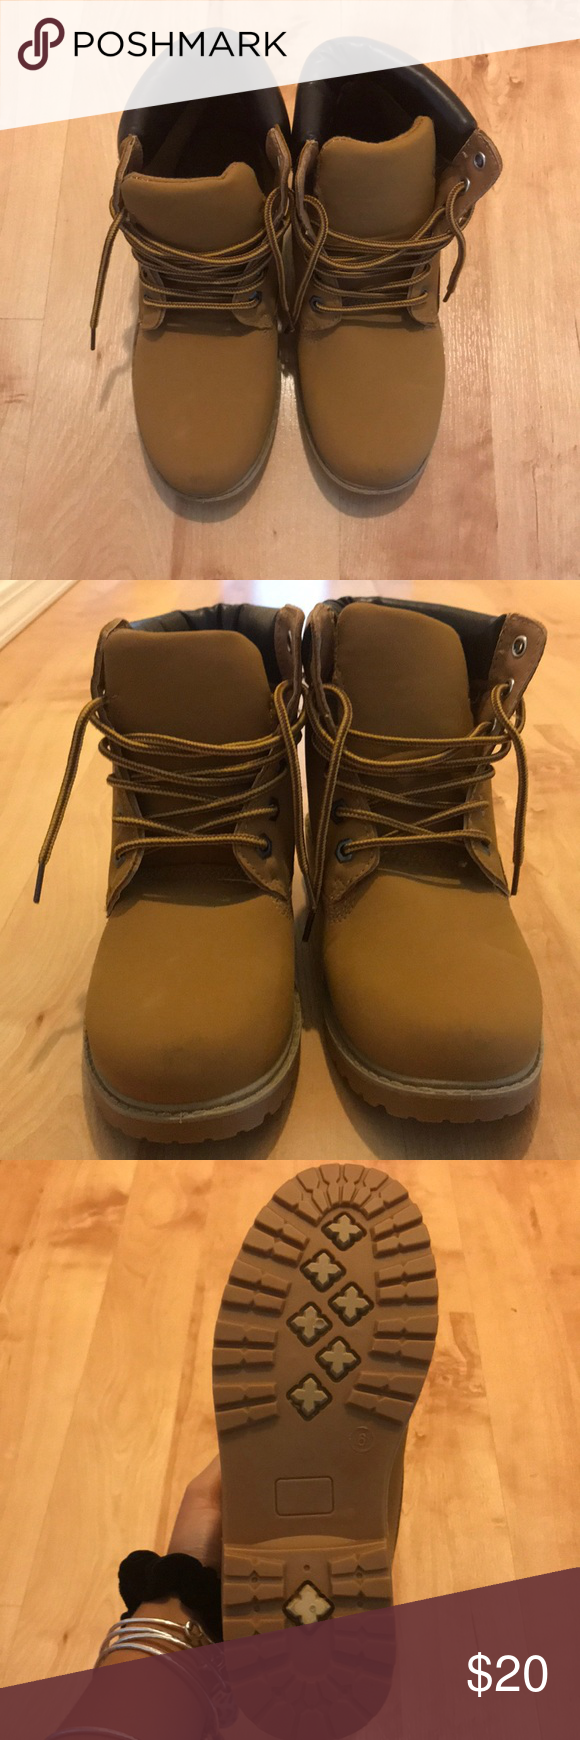 7762a49a5837 Fake timberlands brand new never used still has the tags on them shoes  ankle boots booties